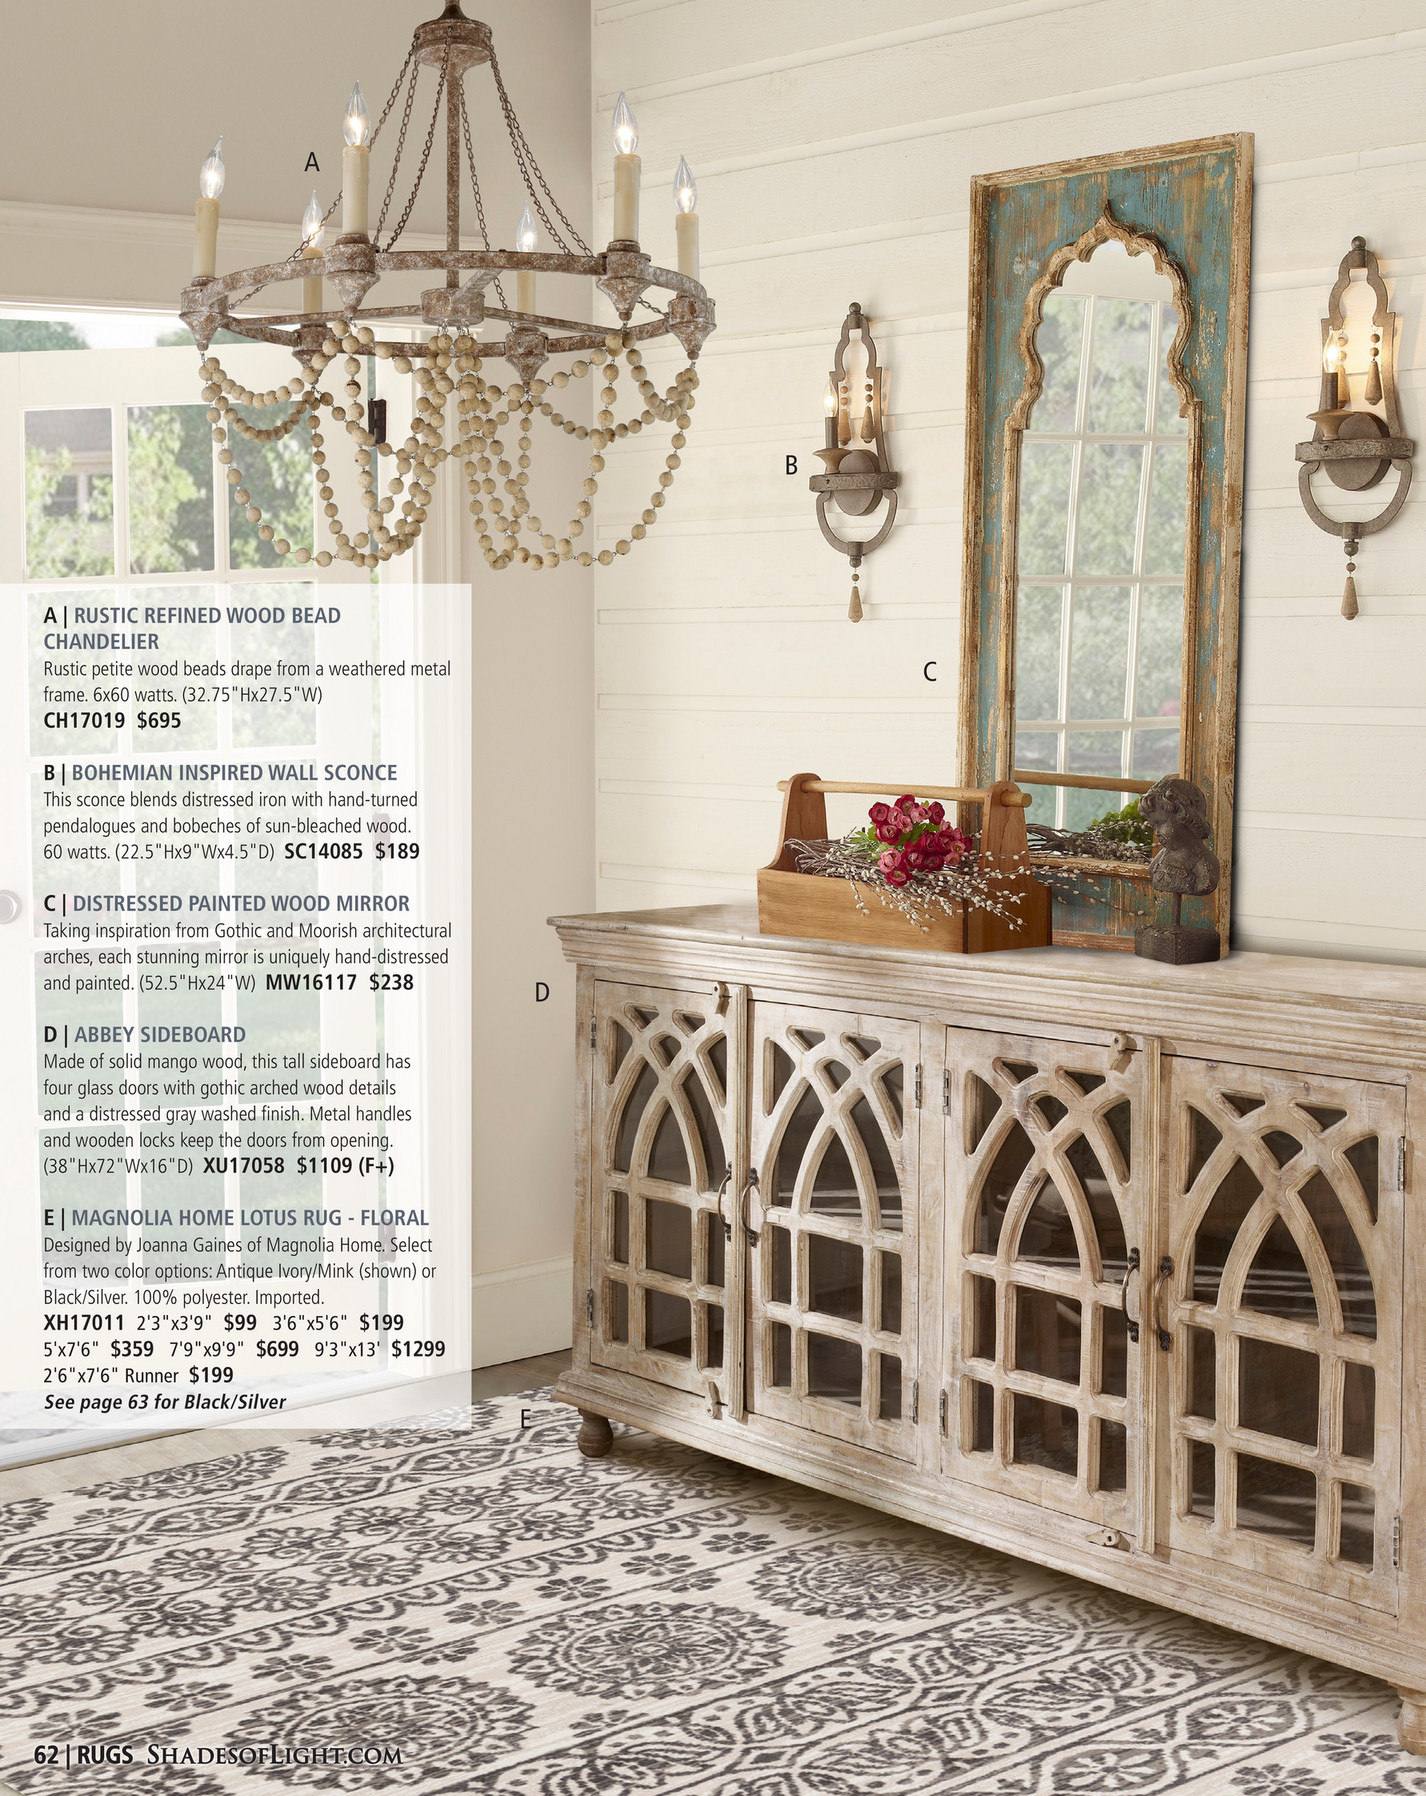 A B Rustic Refined Wood Bead Chandelier C Petite Beads D From